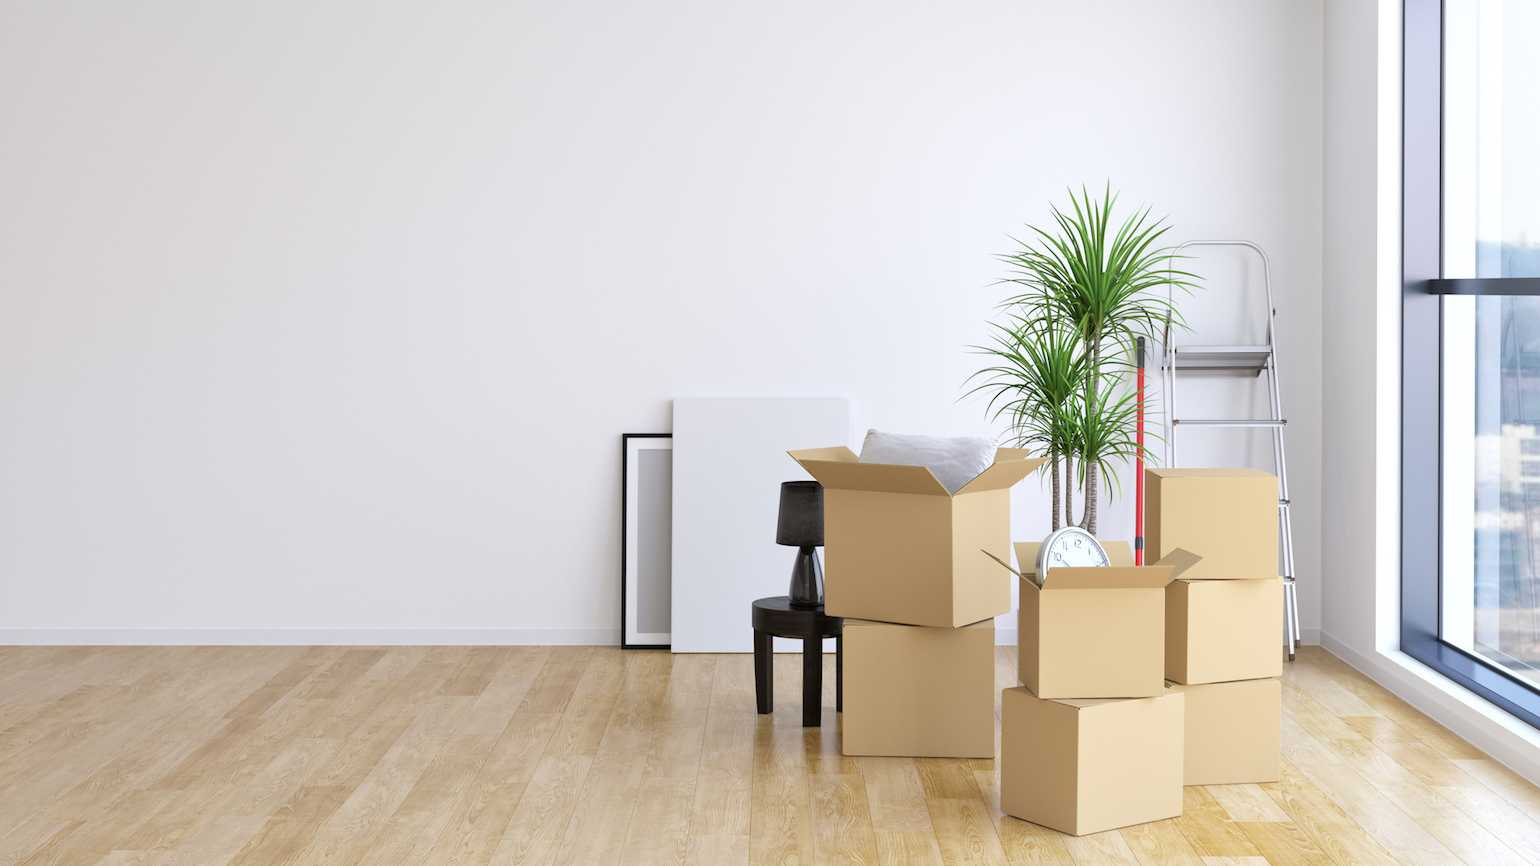 Learning to accept moving